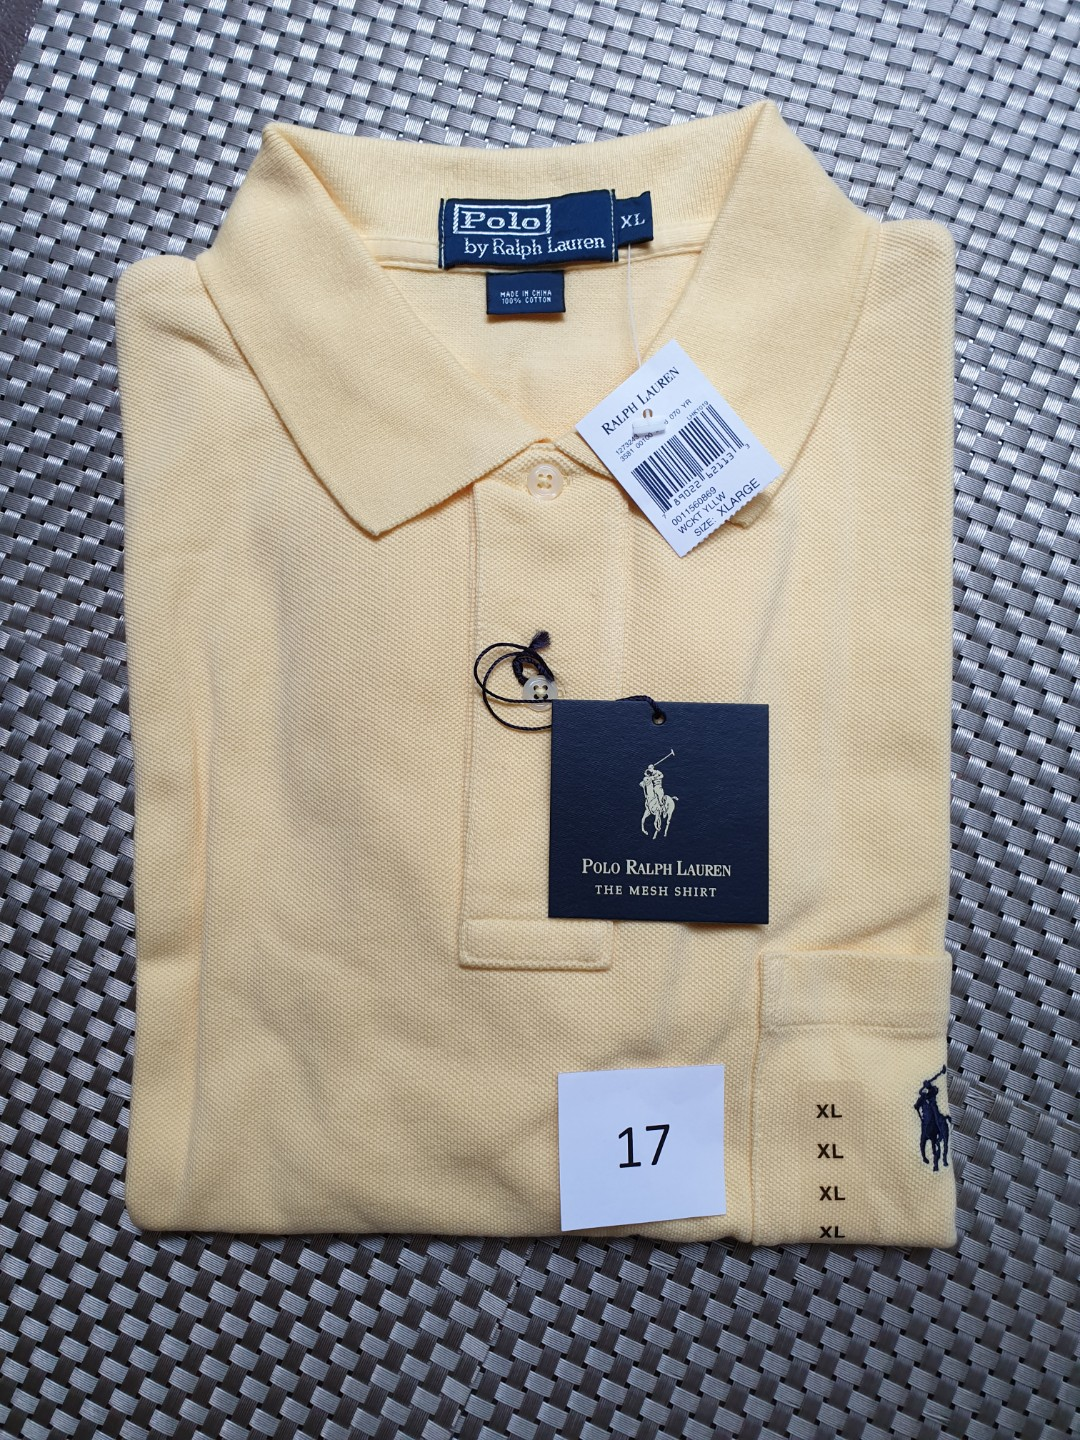 33bf7df7e BN Polo Ralph Lauren S/S Polo Shirt For Sale, Men's Fashion, Clothes, Tops  on Carousell